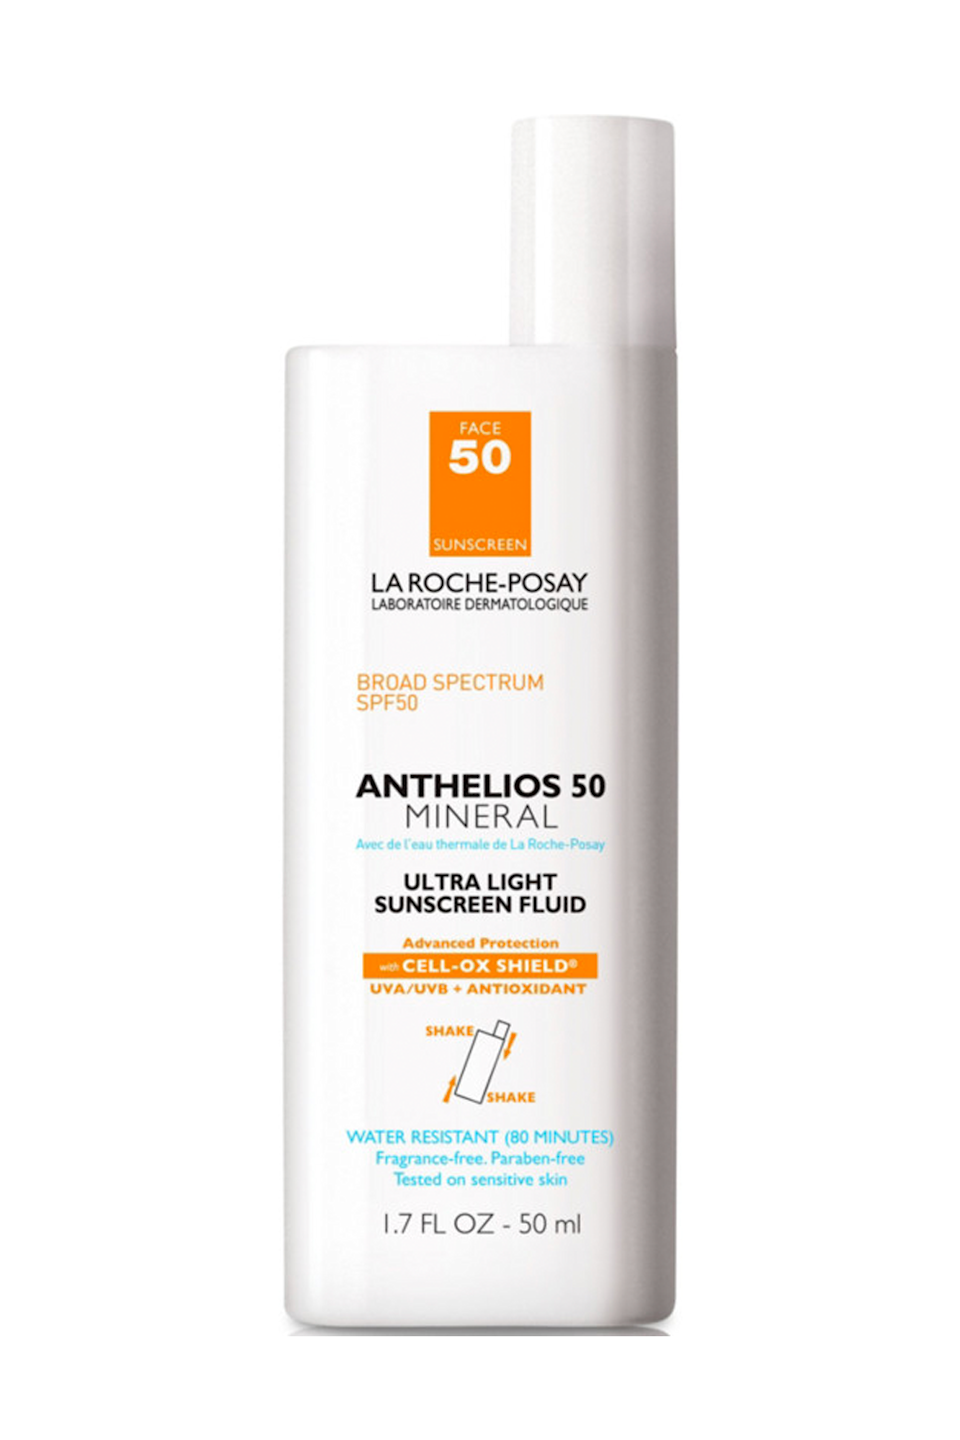 """<p><strong>La Roche-Posay</strong></p><p>ulta.com</p><p><strong>$36.99</strong></p><p><a href=""""https://go.redirectingat.com?id=74968X1596630&url=https%3A%2F%2Fwww.ulta.com%2Fanthelios-50-mineral-ultra-light-sunscreen-fluid-spf-50%3FproductId%3DxlsImpprod3840051&sref=https%3A%2F%2Fwww.cosmopolitan.com%2Fstyle-beauty%2Fbeauty%2Fg35863427%2Fbest-drugstore-sunscreens%2F"""" rel=""""nofollow noopener"""" target=""""_blank"""" data-ylk=""""slk:Shop Now"""" class=""""link rapid-noclick-resp"""">Shop Now</a></p><p>Even as a daily sunscreen wearer, I totally get why SPF gets a bad rap: It's usually thick, chalky, and leaves behind an annoying white cast. But this drugstore formula is here to change your mind—it's basically as lightweight as SPF gets and it <strong>creates a</strong><strong> soft, non-greasy base</strong> that's even great for <a href=""""https://www.cosmopolitan.com/style-beauty/beauty/g35217353/best-spring-2021-makeup-trends/"""" rel=""""nofollow noopener"""" target=""""_blank"""" data-ylk=""""slk:makeup"""" class=""""link rapid-noclick-resp"""">makeup</a> prep.</p>"""